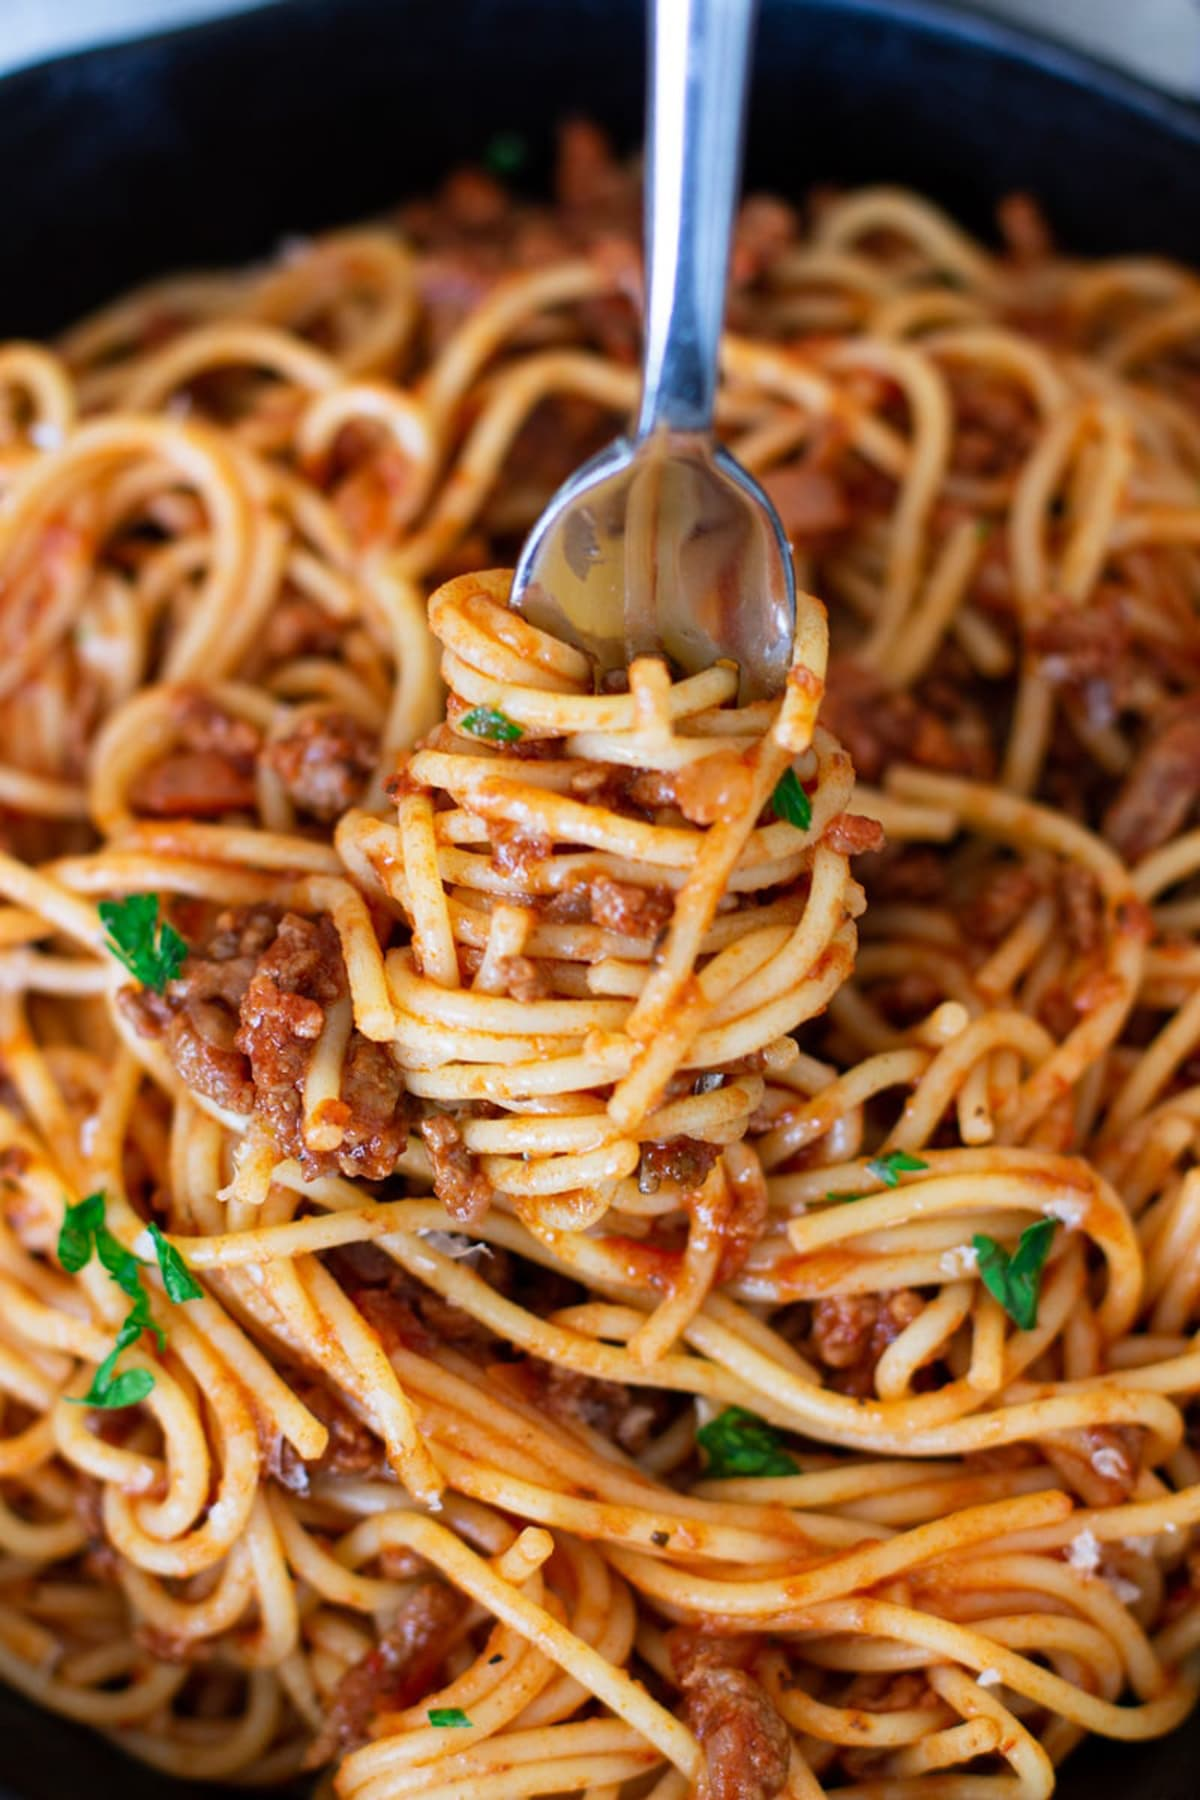 Fork twirled with spaghetti noodles covered in a red marinara sauce.